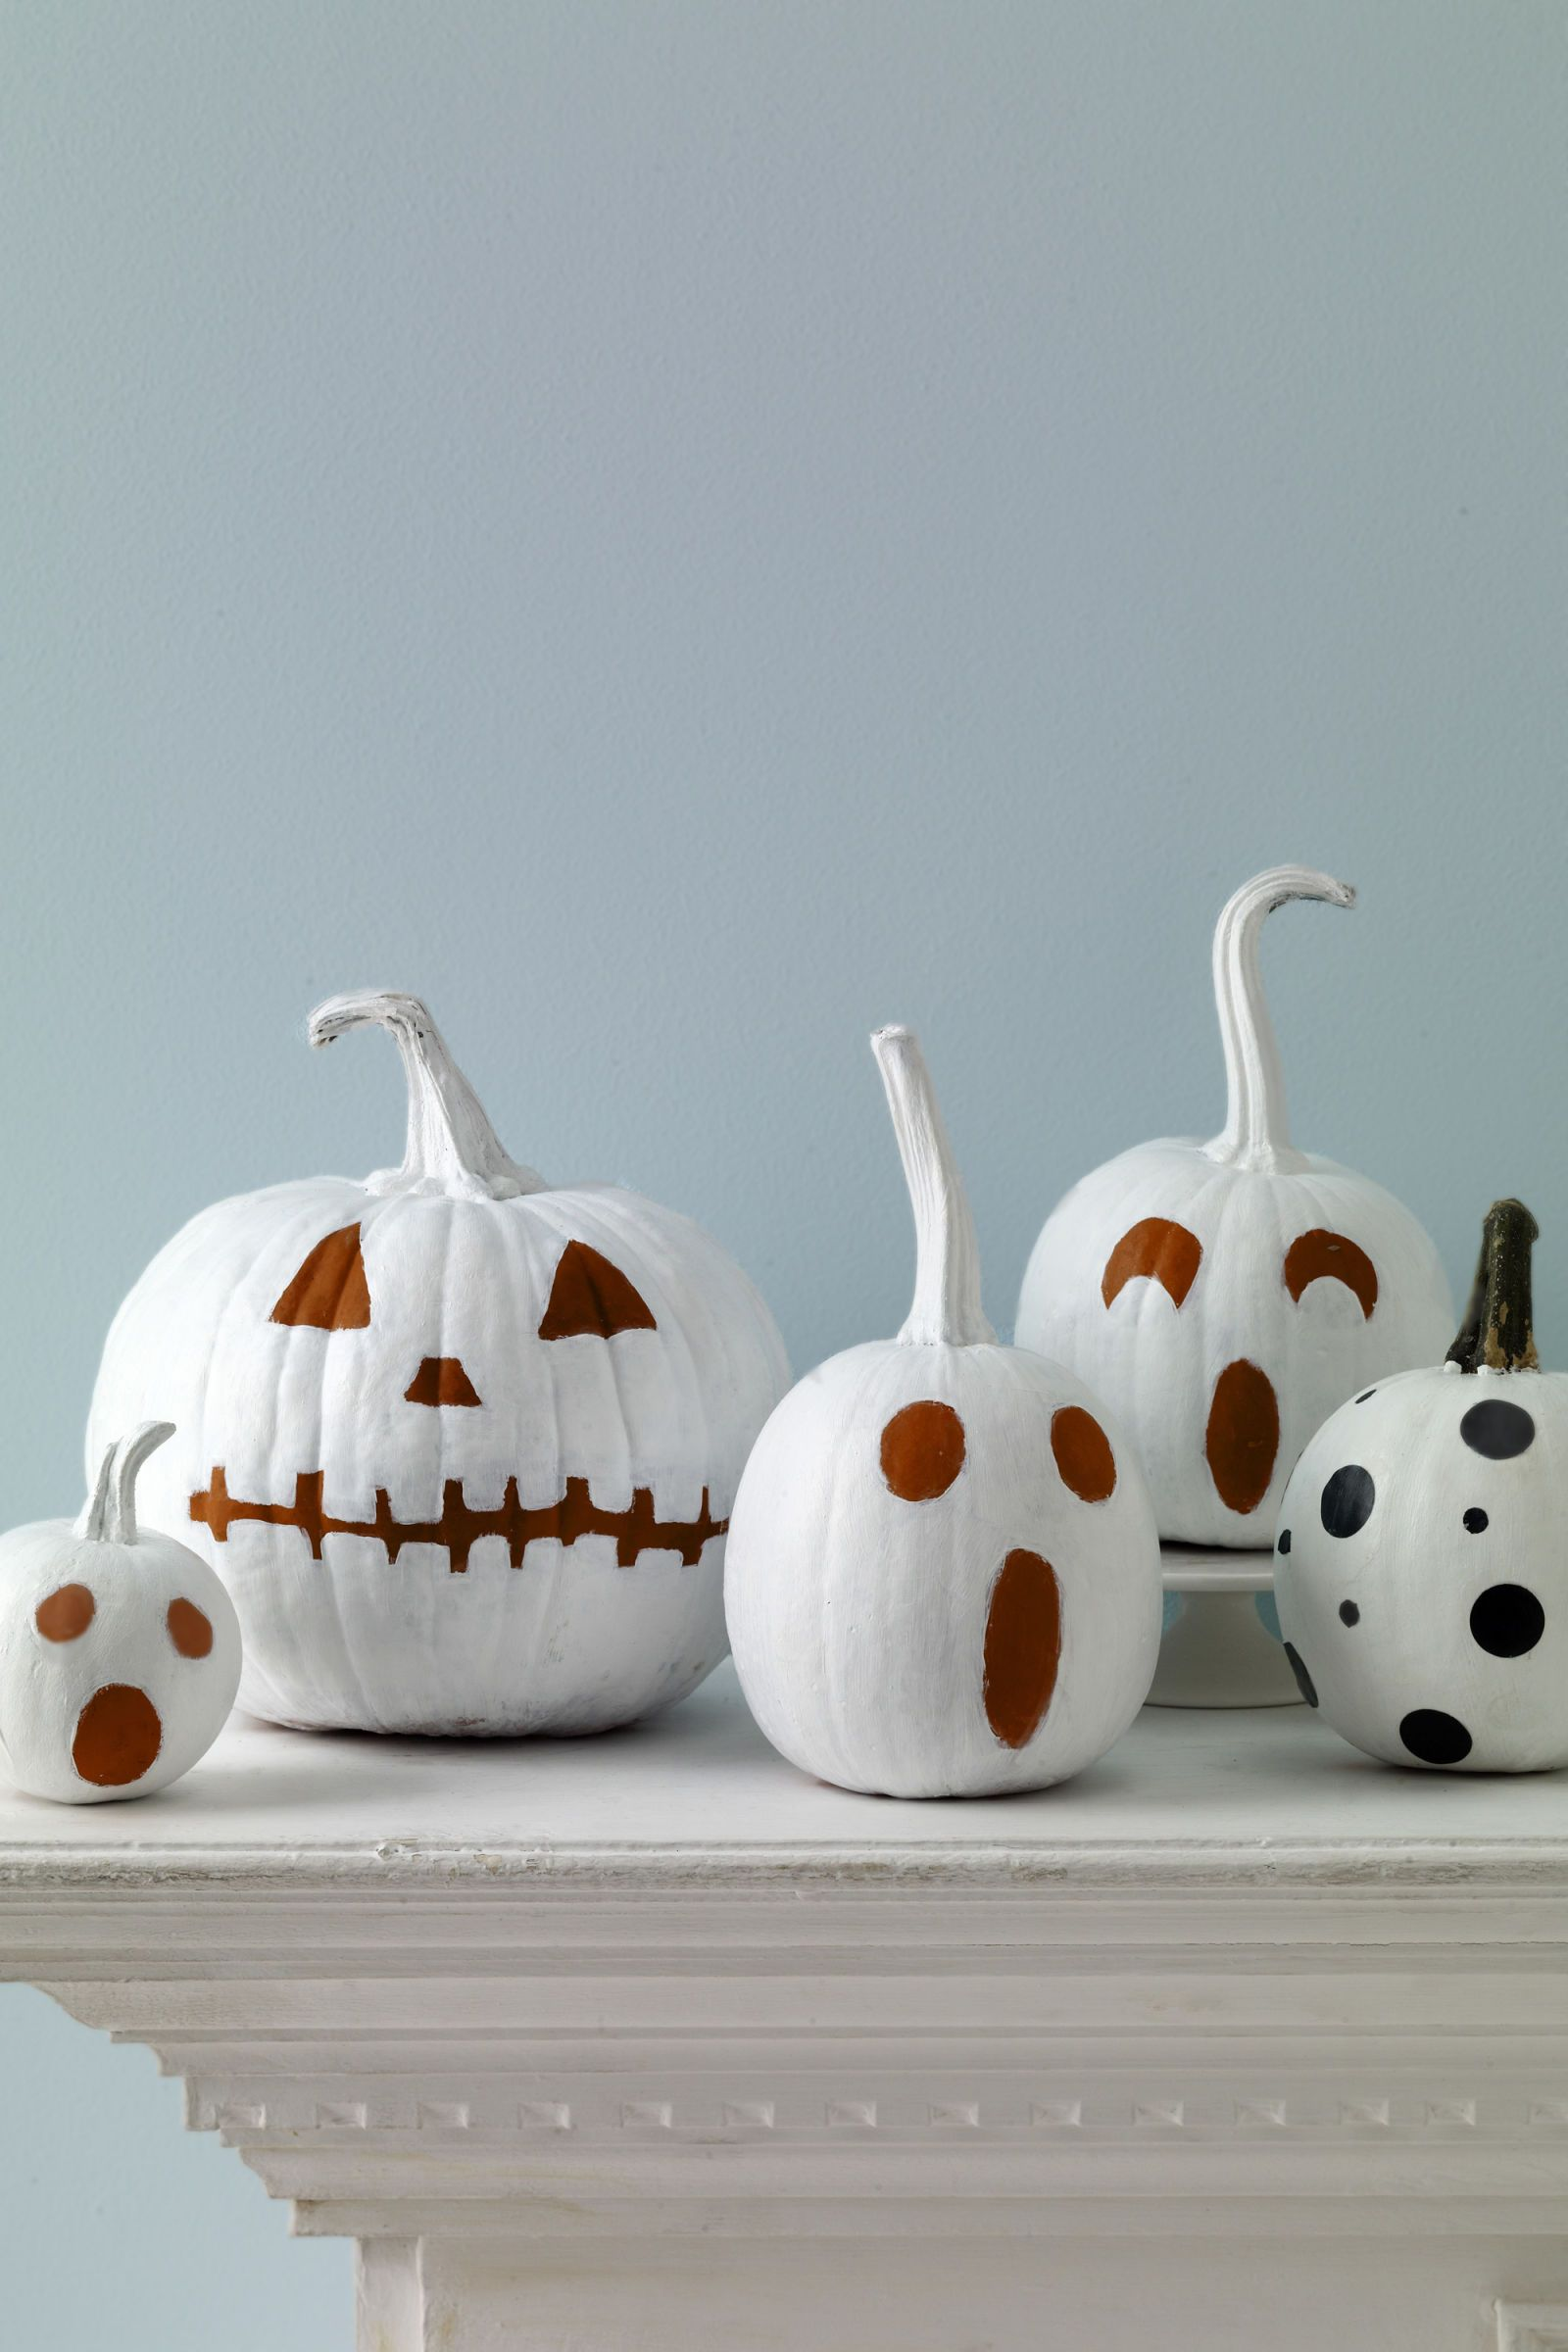 14 elegant halloween decorations that are so chic its scary - Ceramic Halloween Decorations